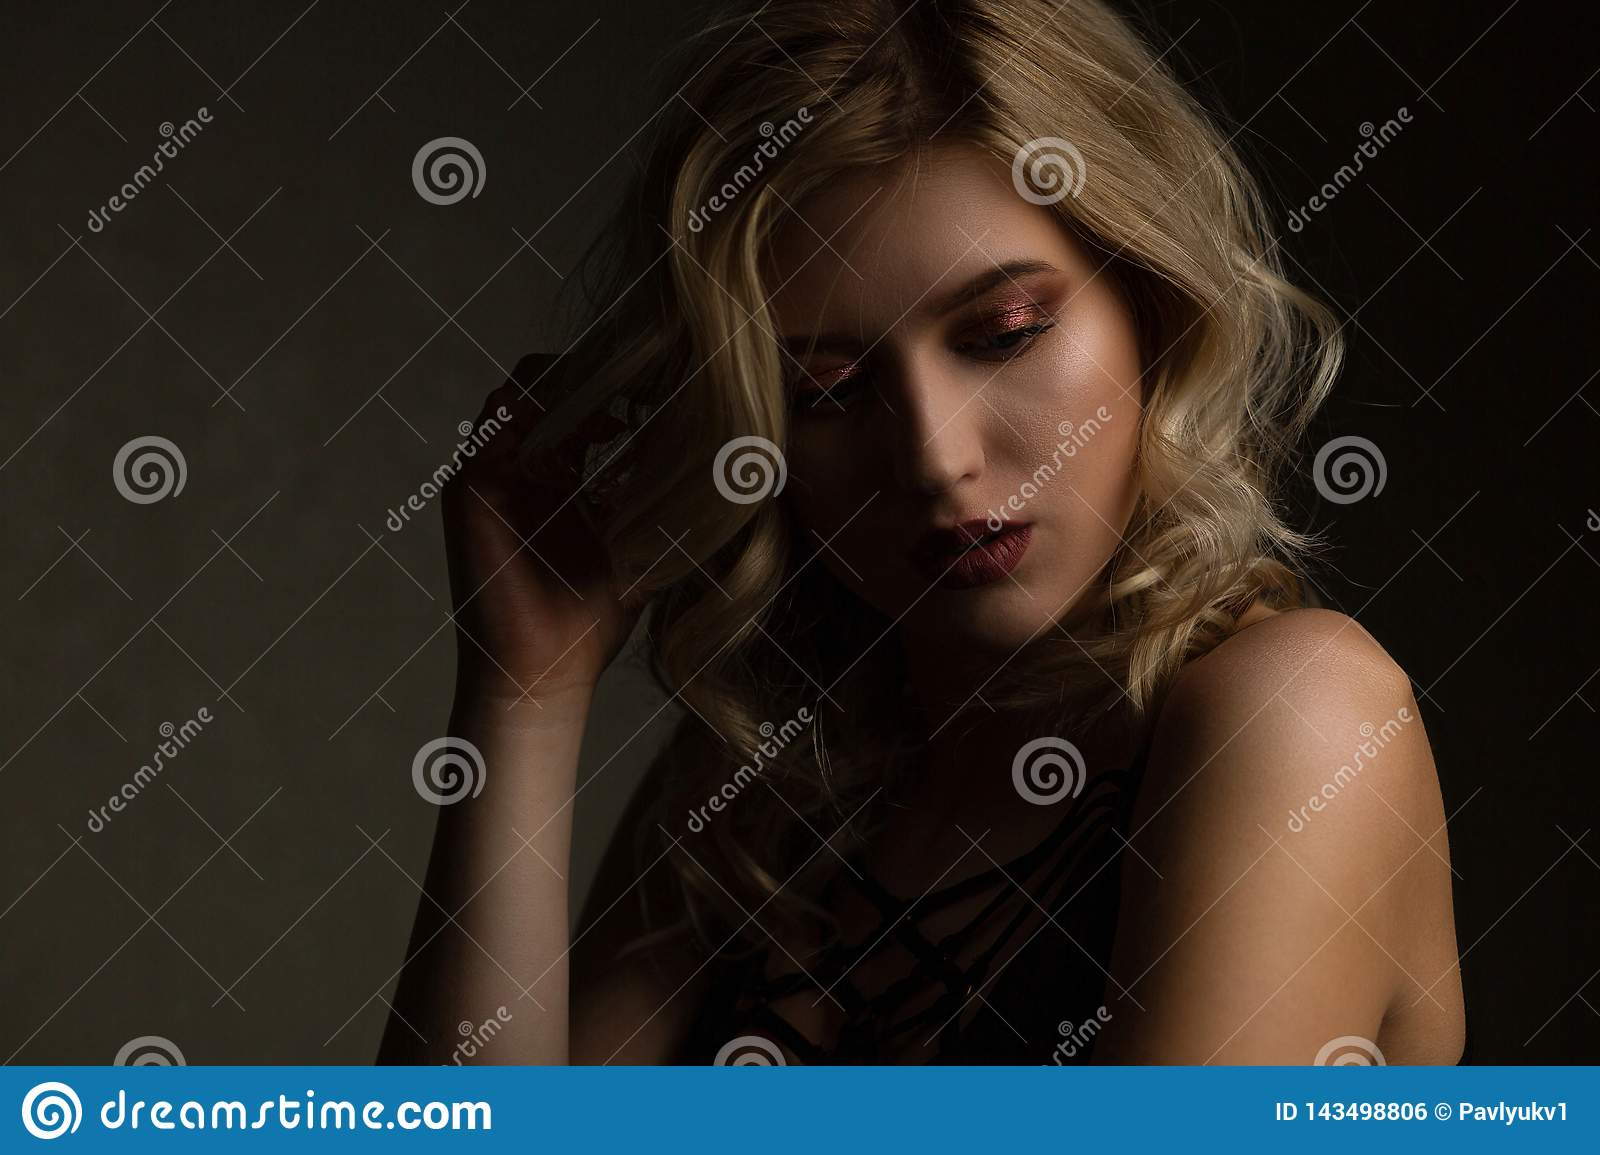 Sensual blonde model with perfect makeup and naked shoulders posing with contrast light. Empty space